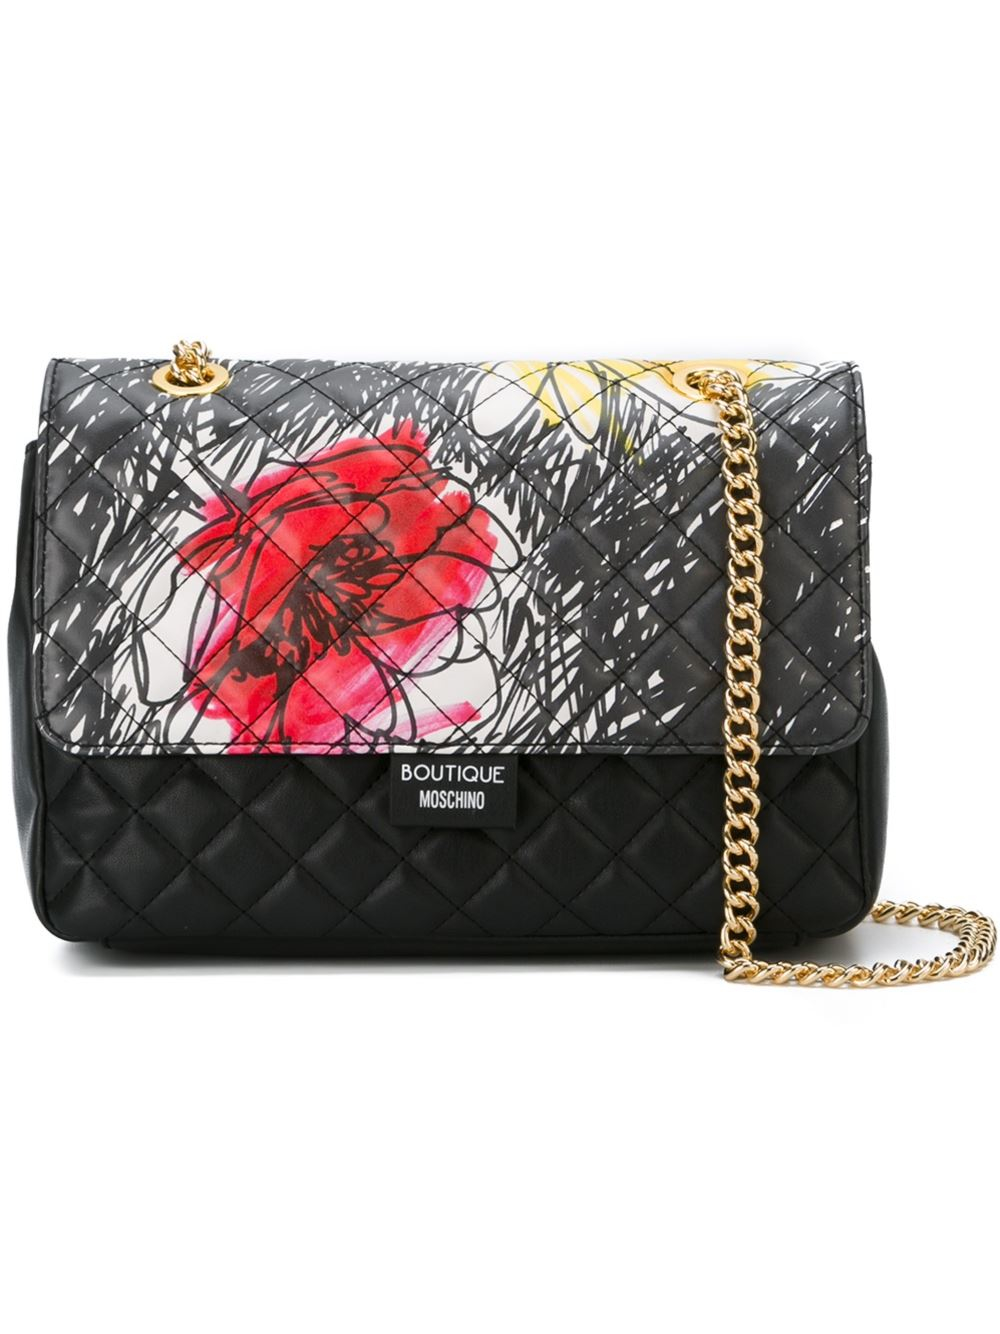 Lyst - Boutique Moschino Floral Quilted Shoulder Bag In Black